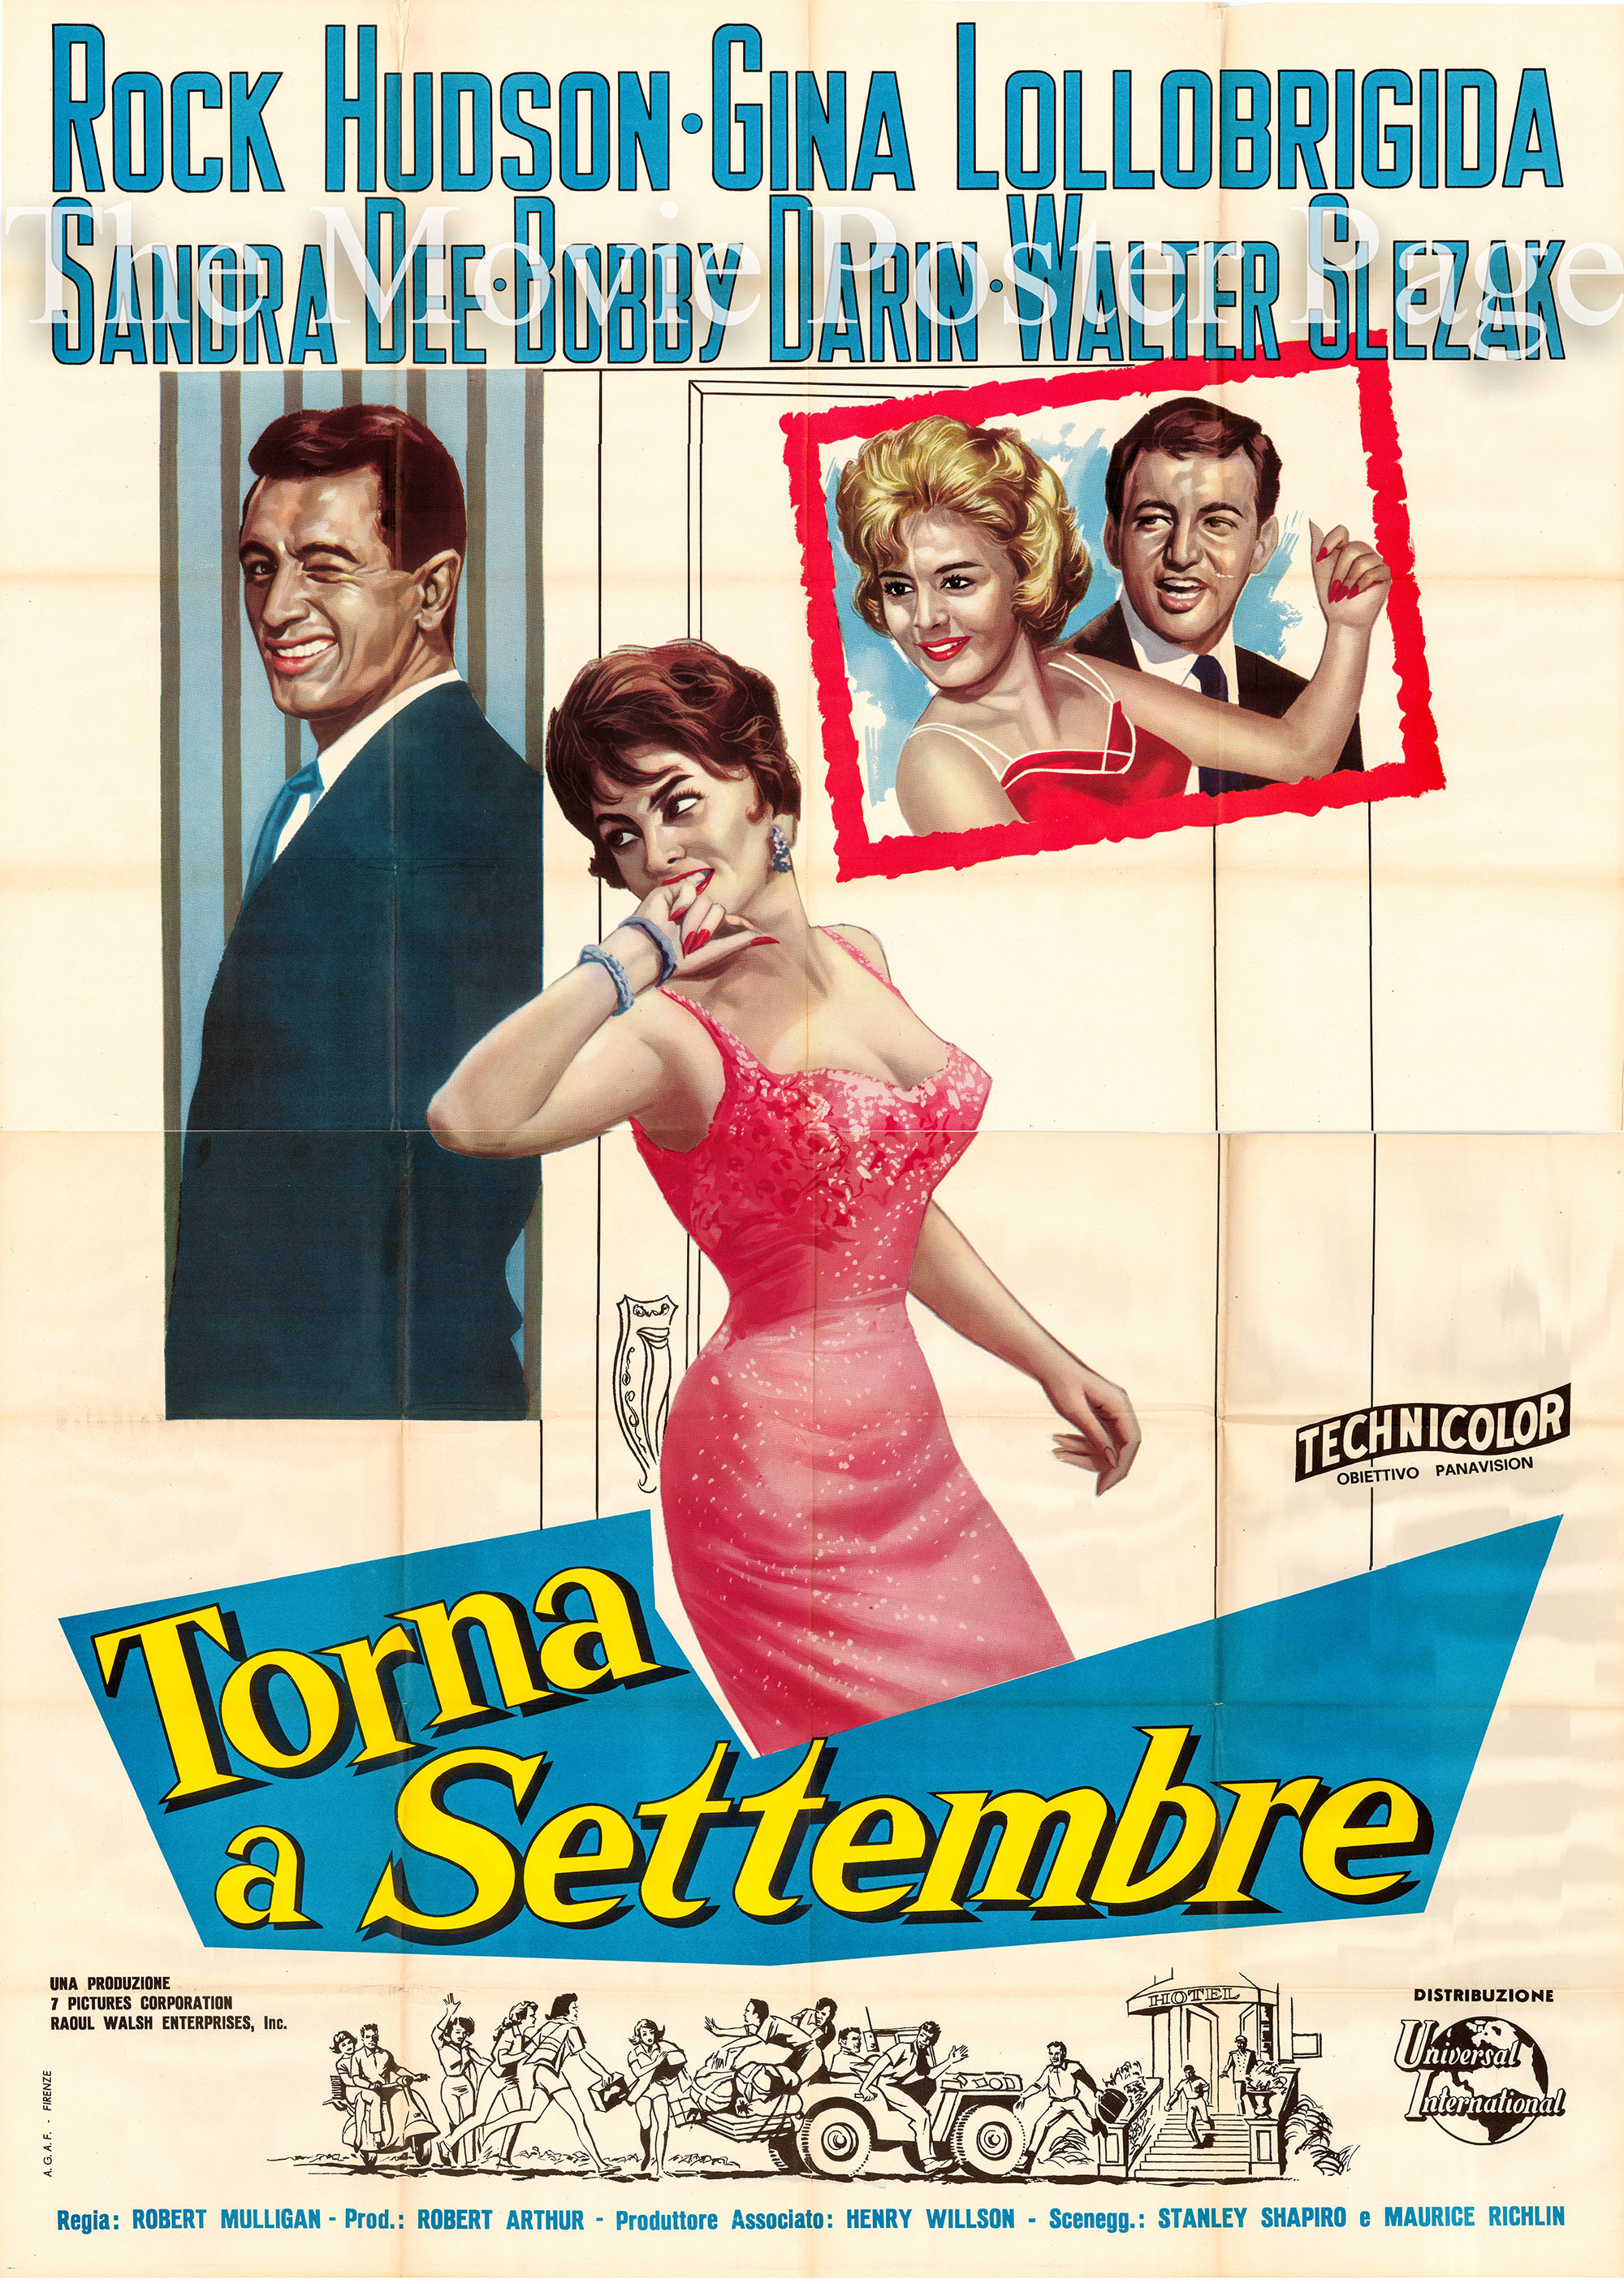 Pictured is an Italian 4-sheet promotional poster for the 1961 Robert Mulligan film Come September starring Rock Hudson, Sandra Dee, Bobby Darin and gina Lollobrigida.